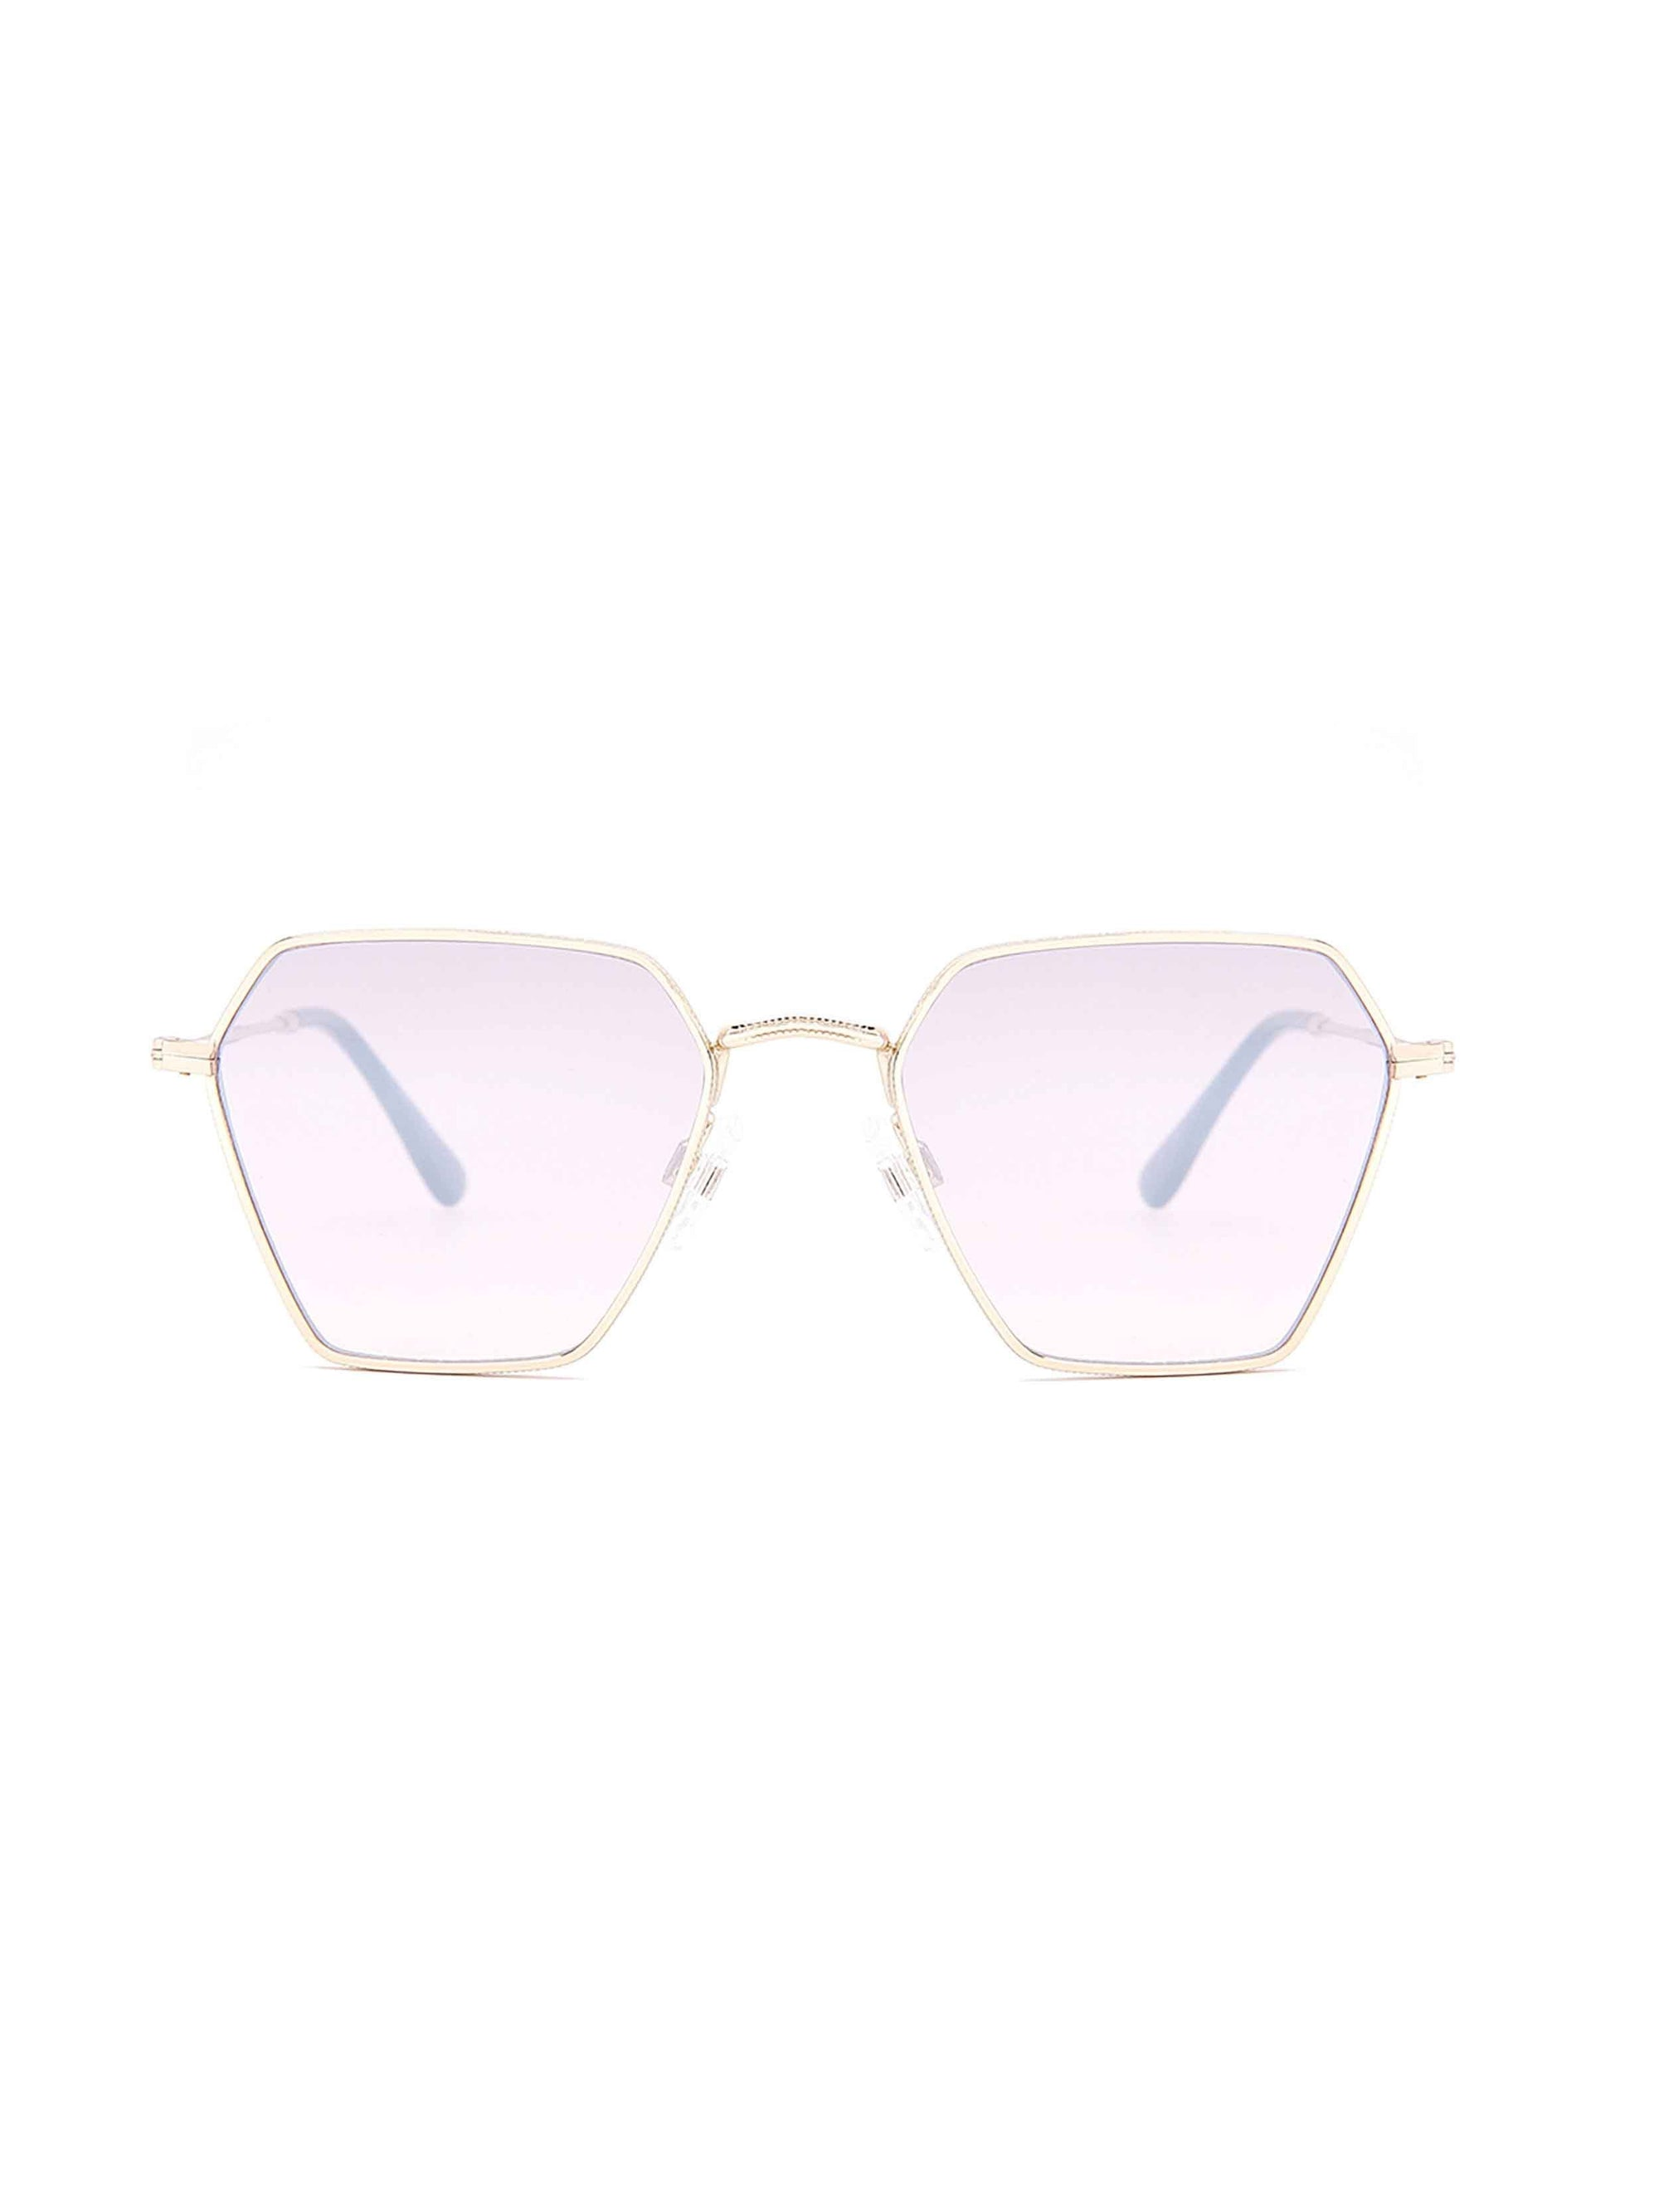 Lentes Carolina Lemke CL1716 03